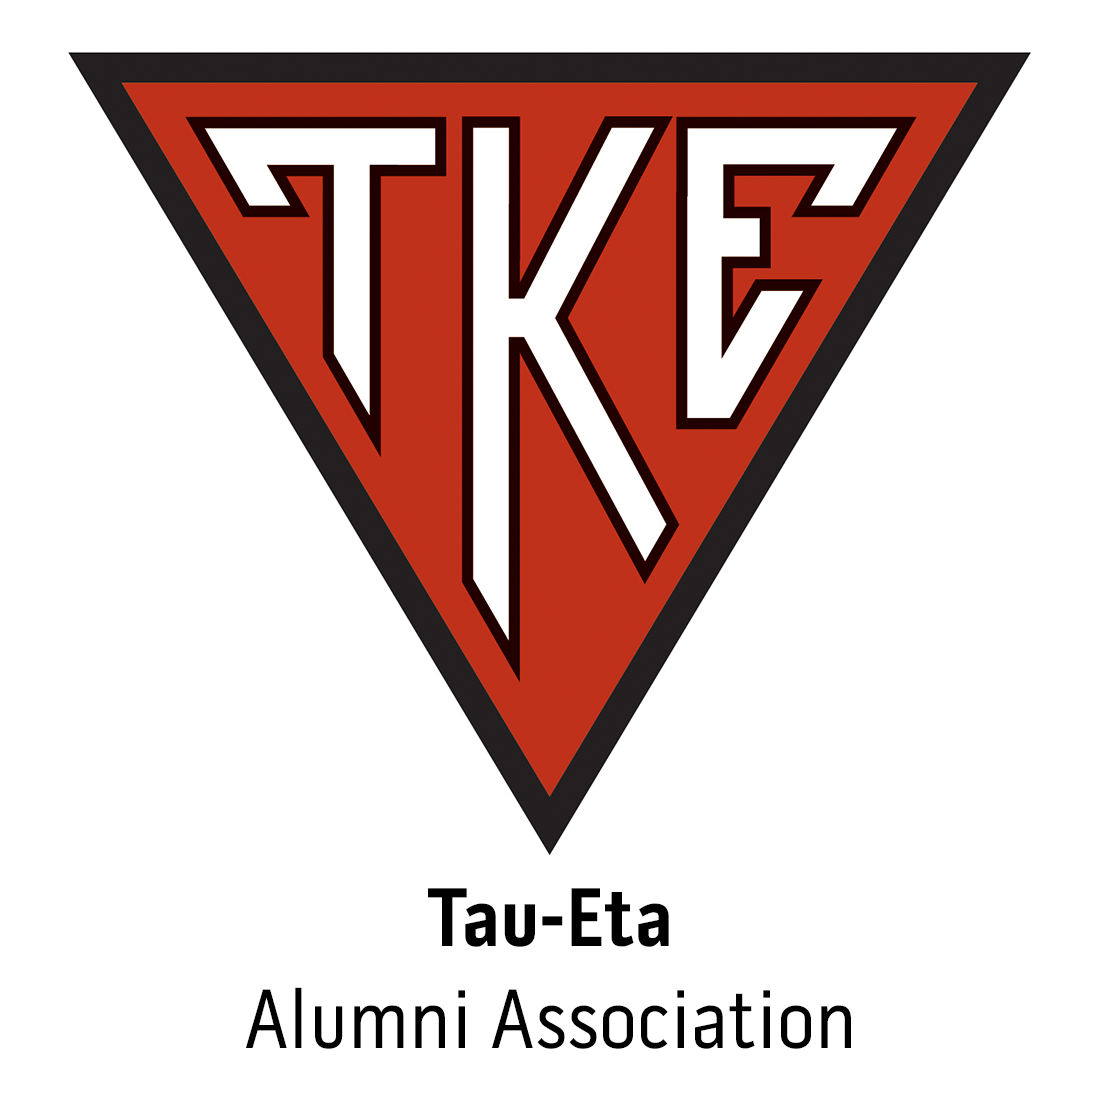 Tau-Eta Alumni Association for Southern Connecticut State University